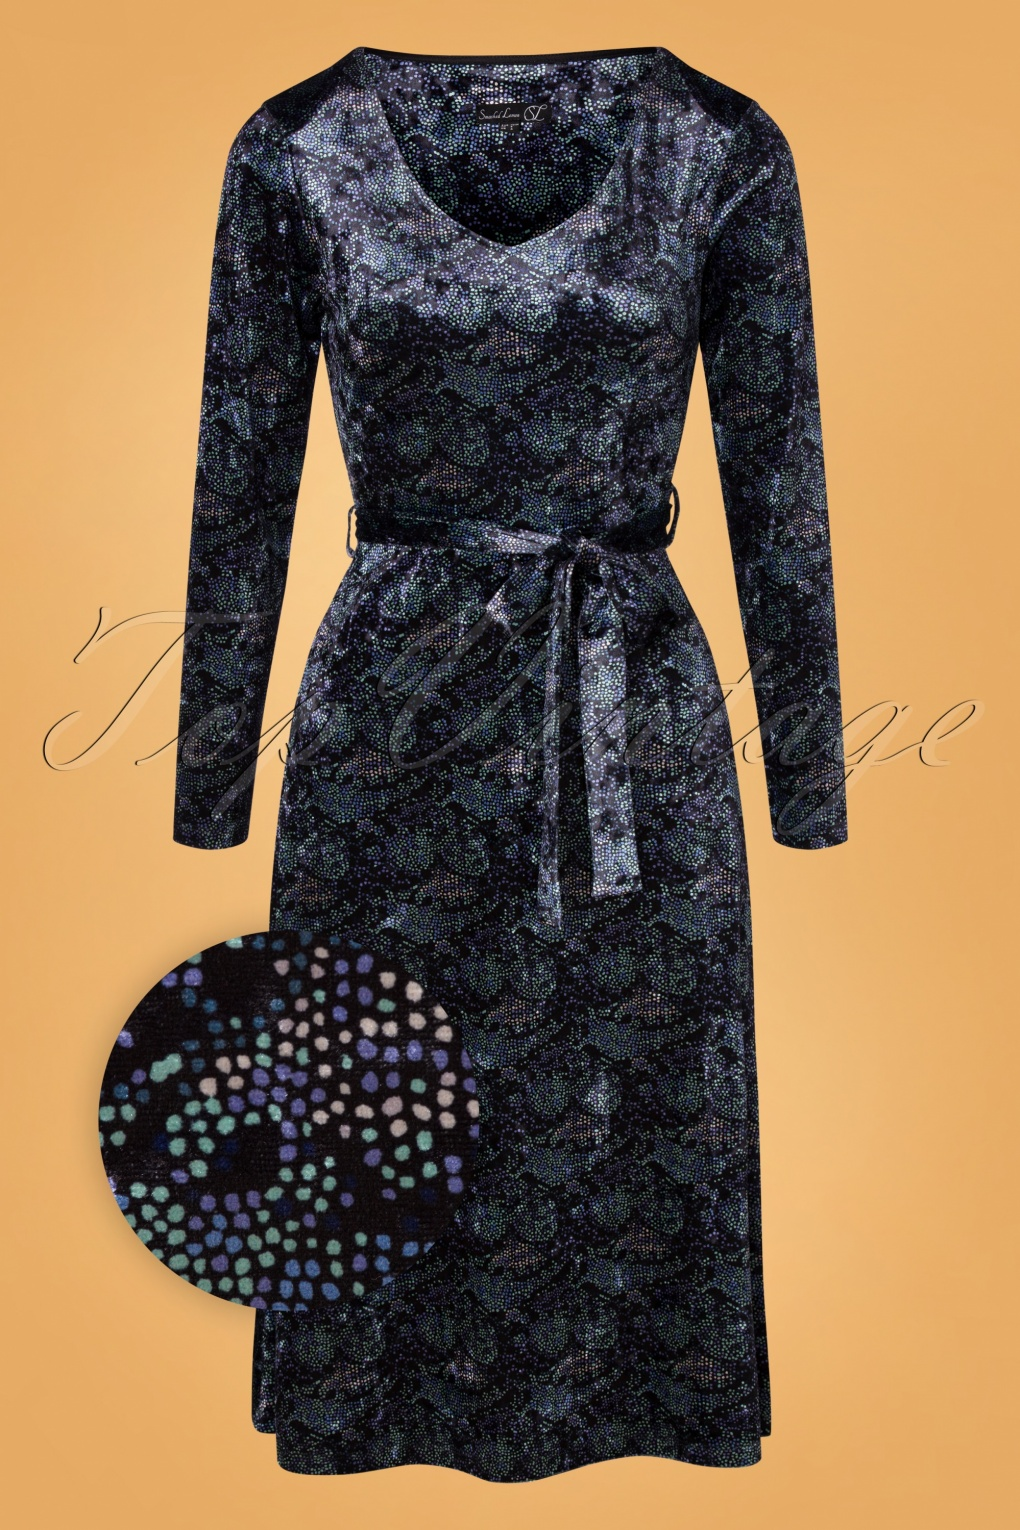 1960s Evening Dresses, Bridesmaids, Mothers Gowns 60s Cobie Velvet Dress in Black and Blue £71.07 AT vintagedancer.com